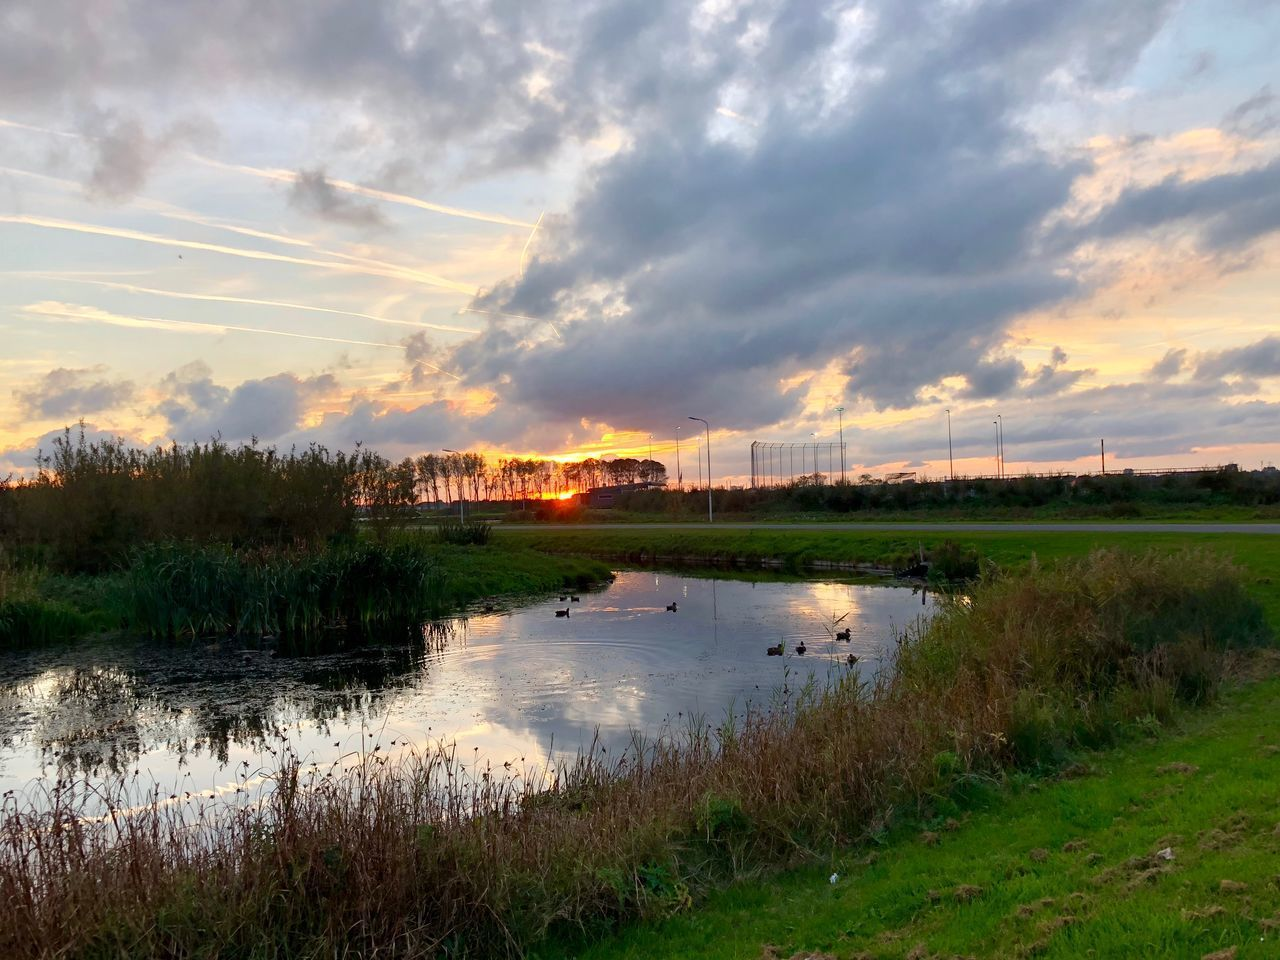 cloud - sky, sky, water, plant, grass, nature, scenics - nature, architecture, built structure, no people, beauty in nature, reflection, tranquility, tranquil scene, sunset, lake, building exterior, environment, outdoors